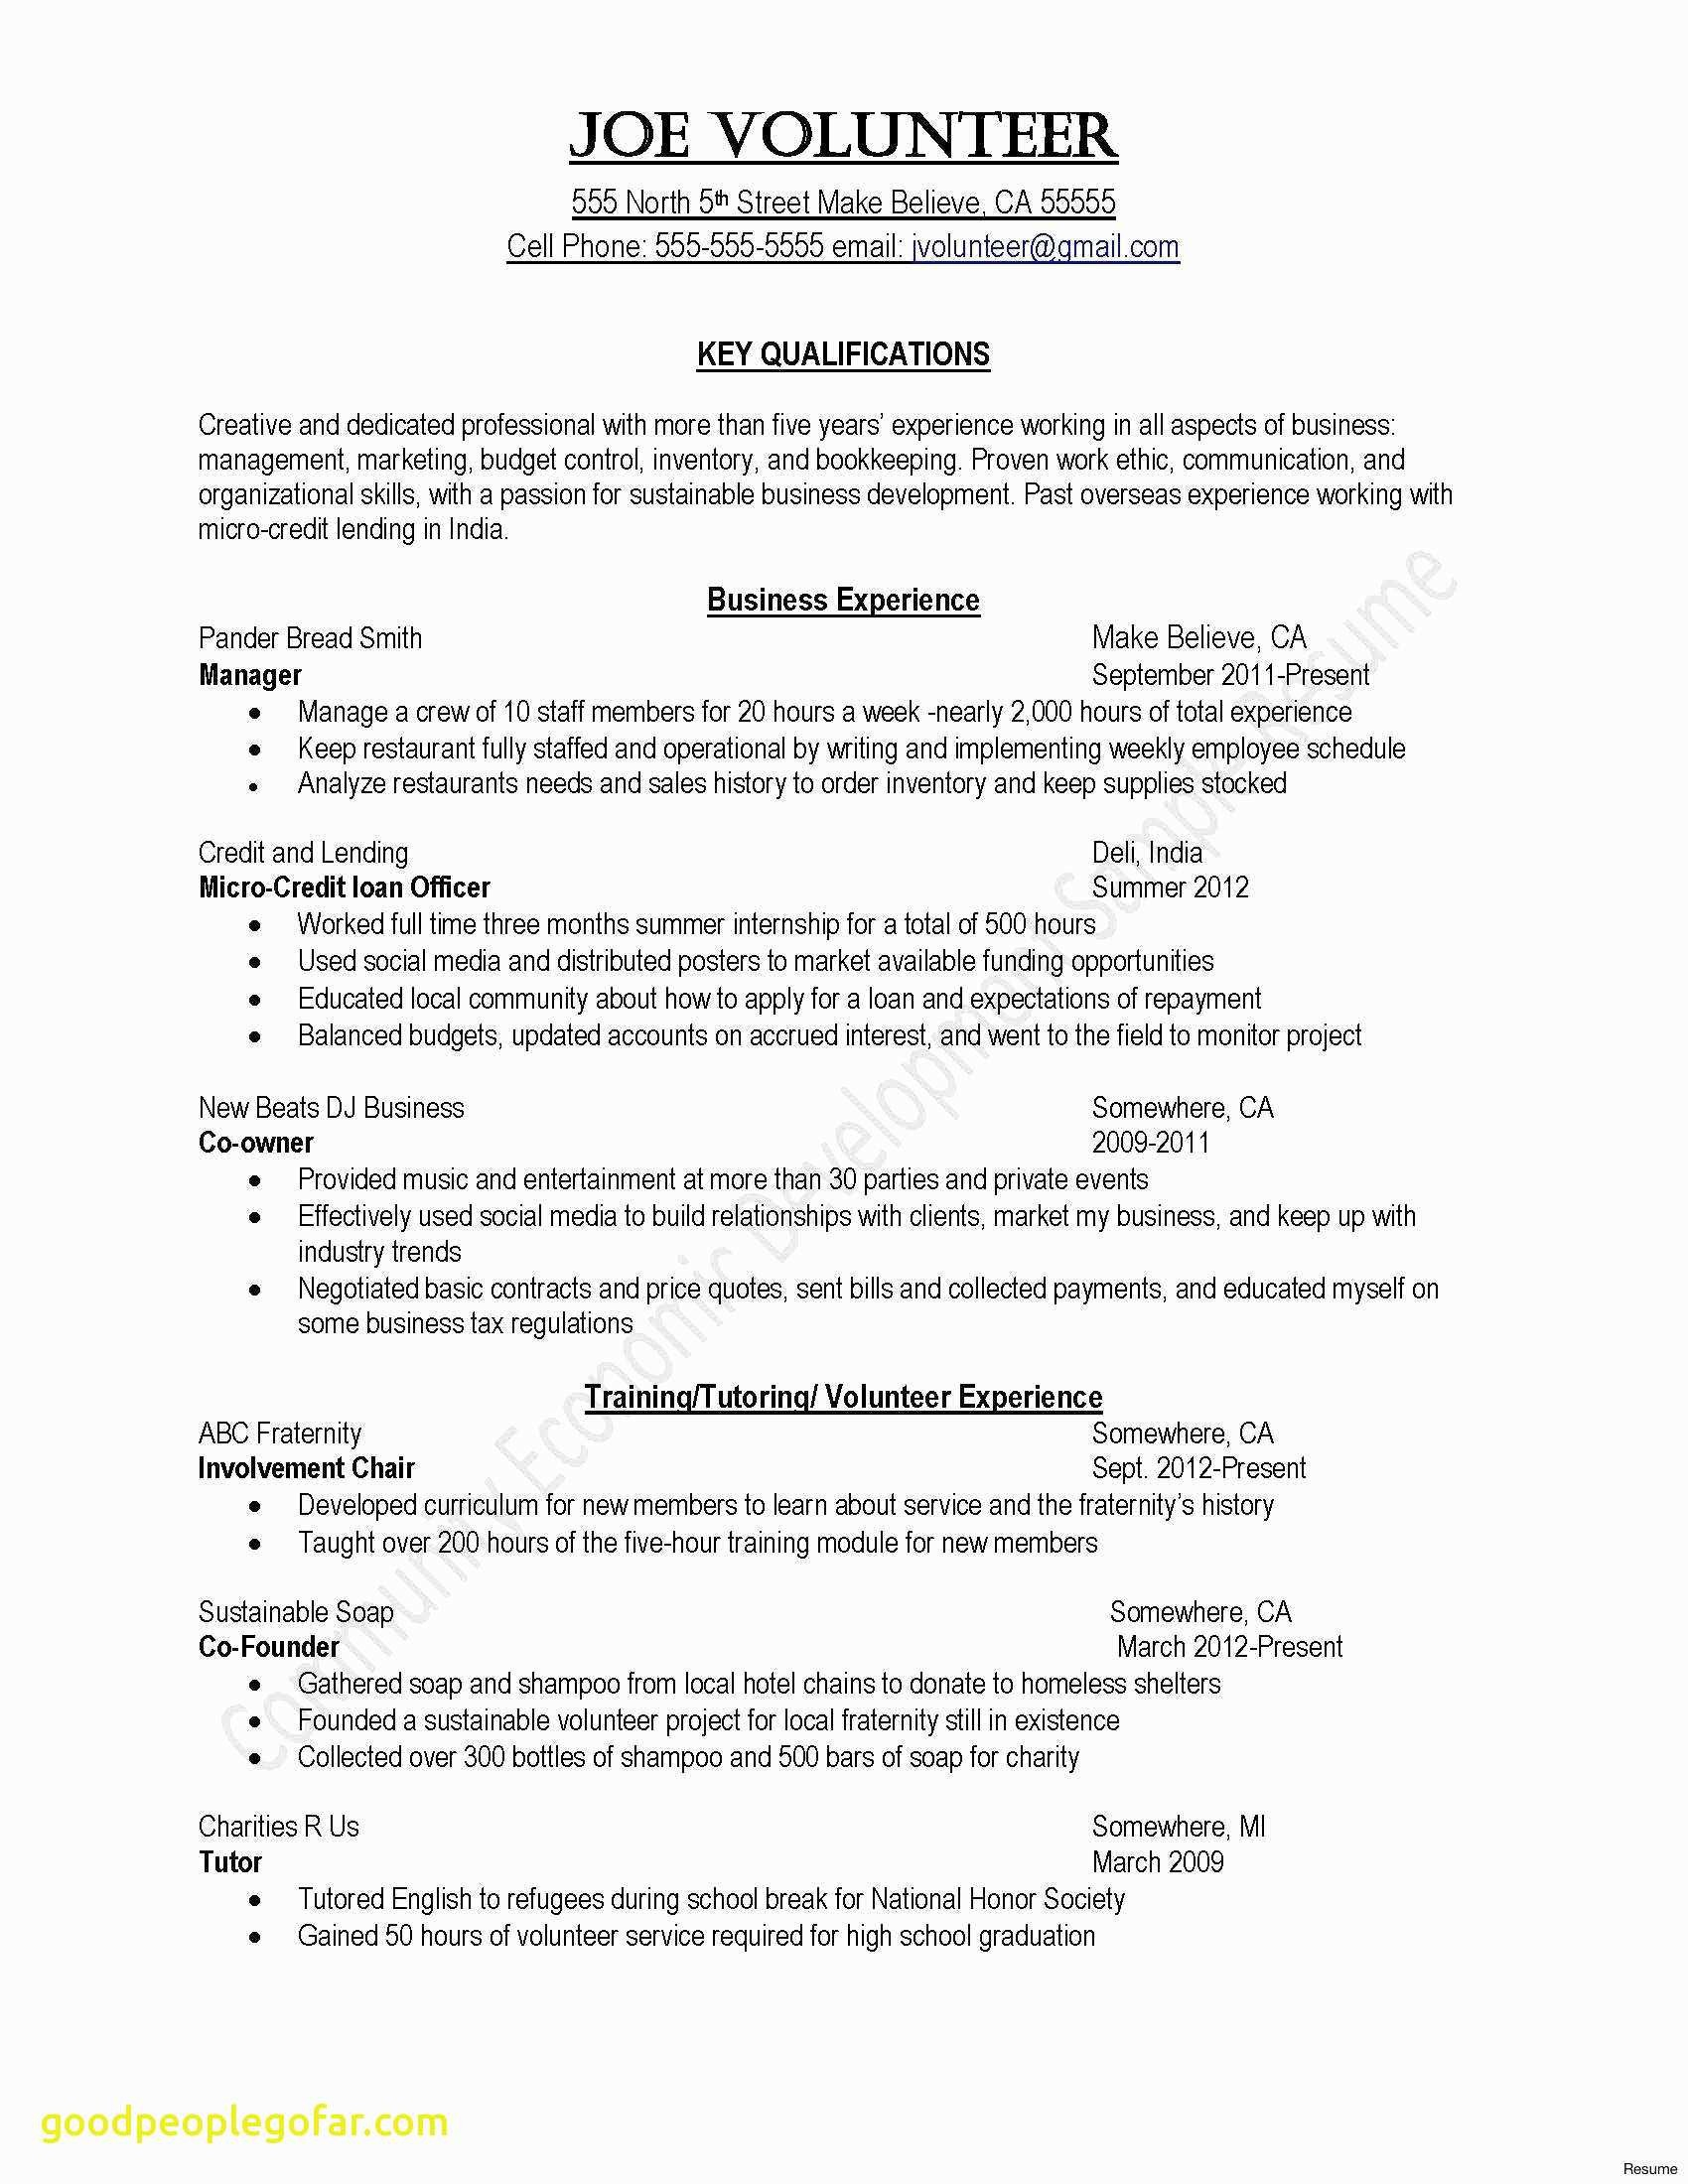 Letter Of Intent Template Word - Template for Resume Word Roddyschrock